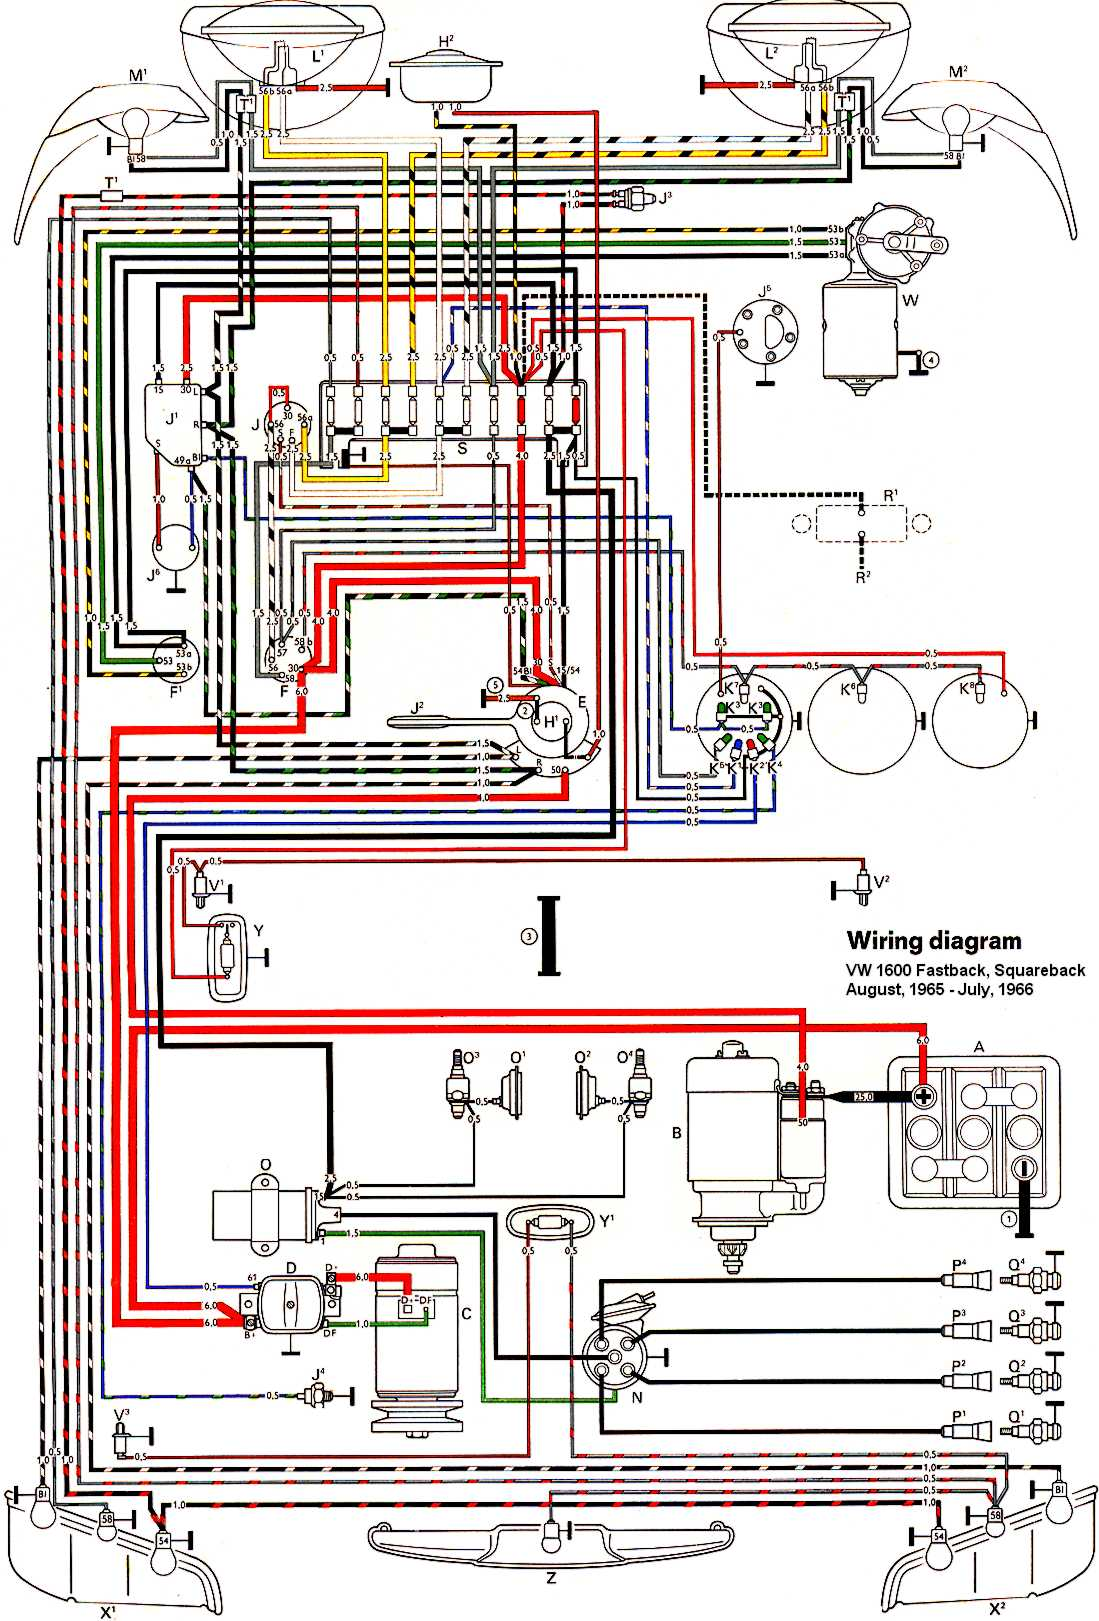 thesamba com type 3 wiring diagrams rh thesamba com 56 VW Bug Wiring-Diagram  1977 Volkswagen Beetle Wiring Diagram